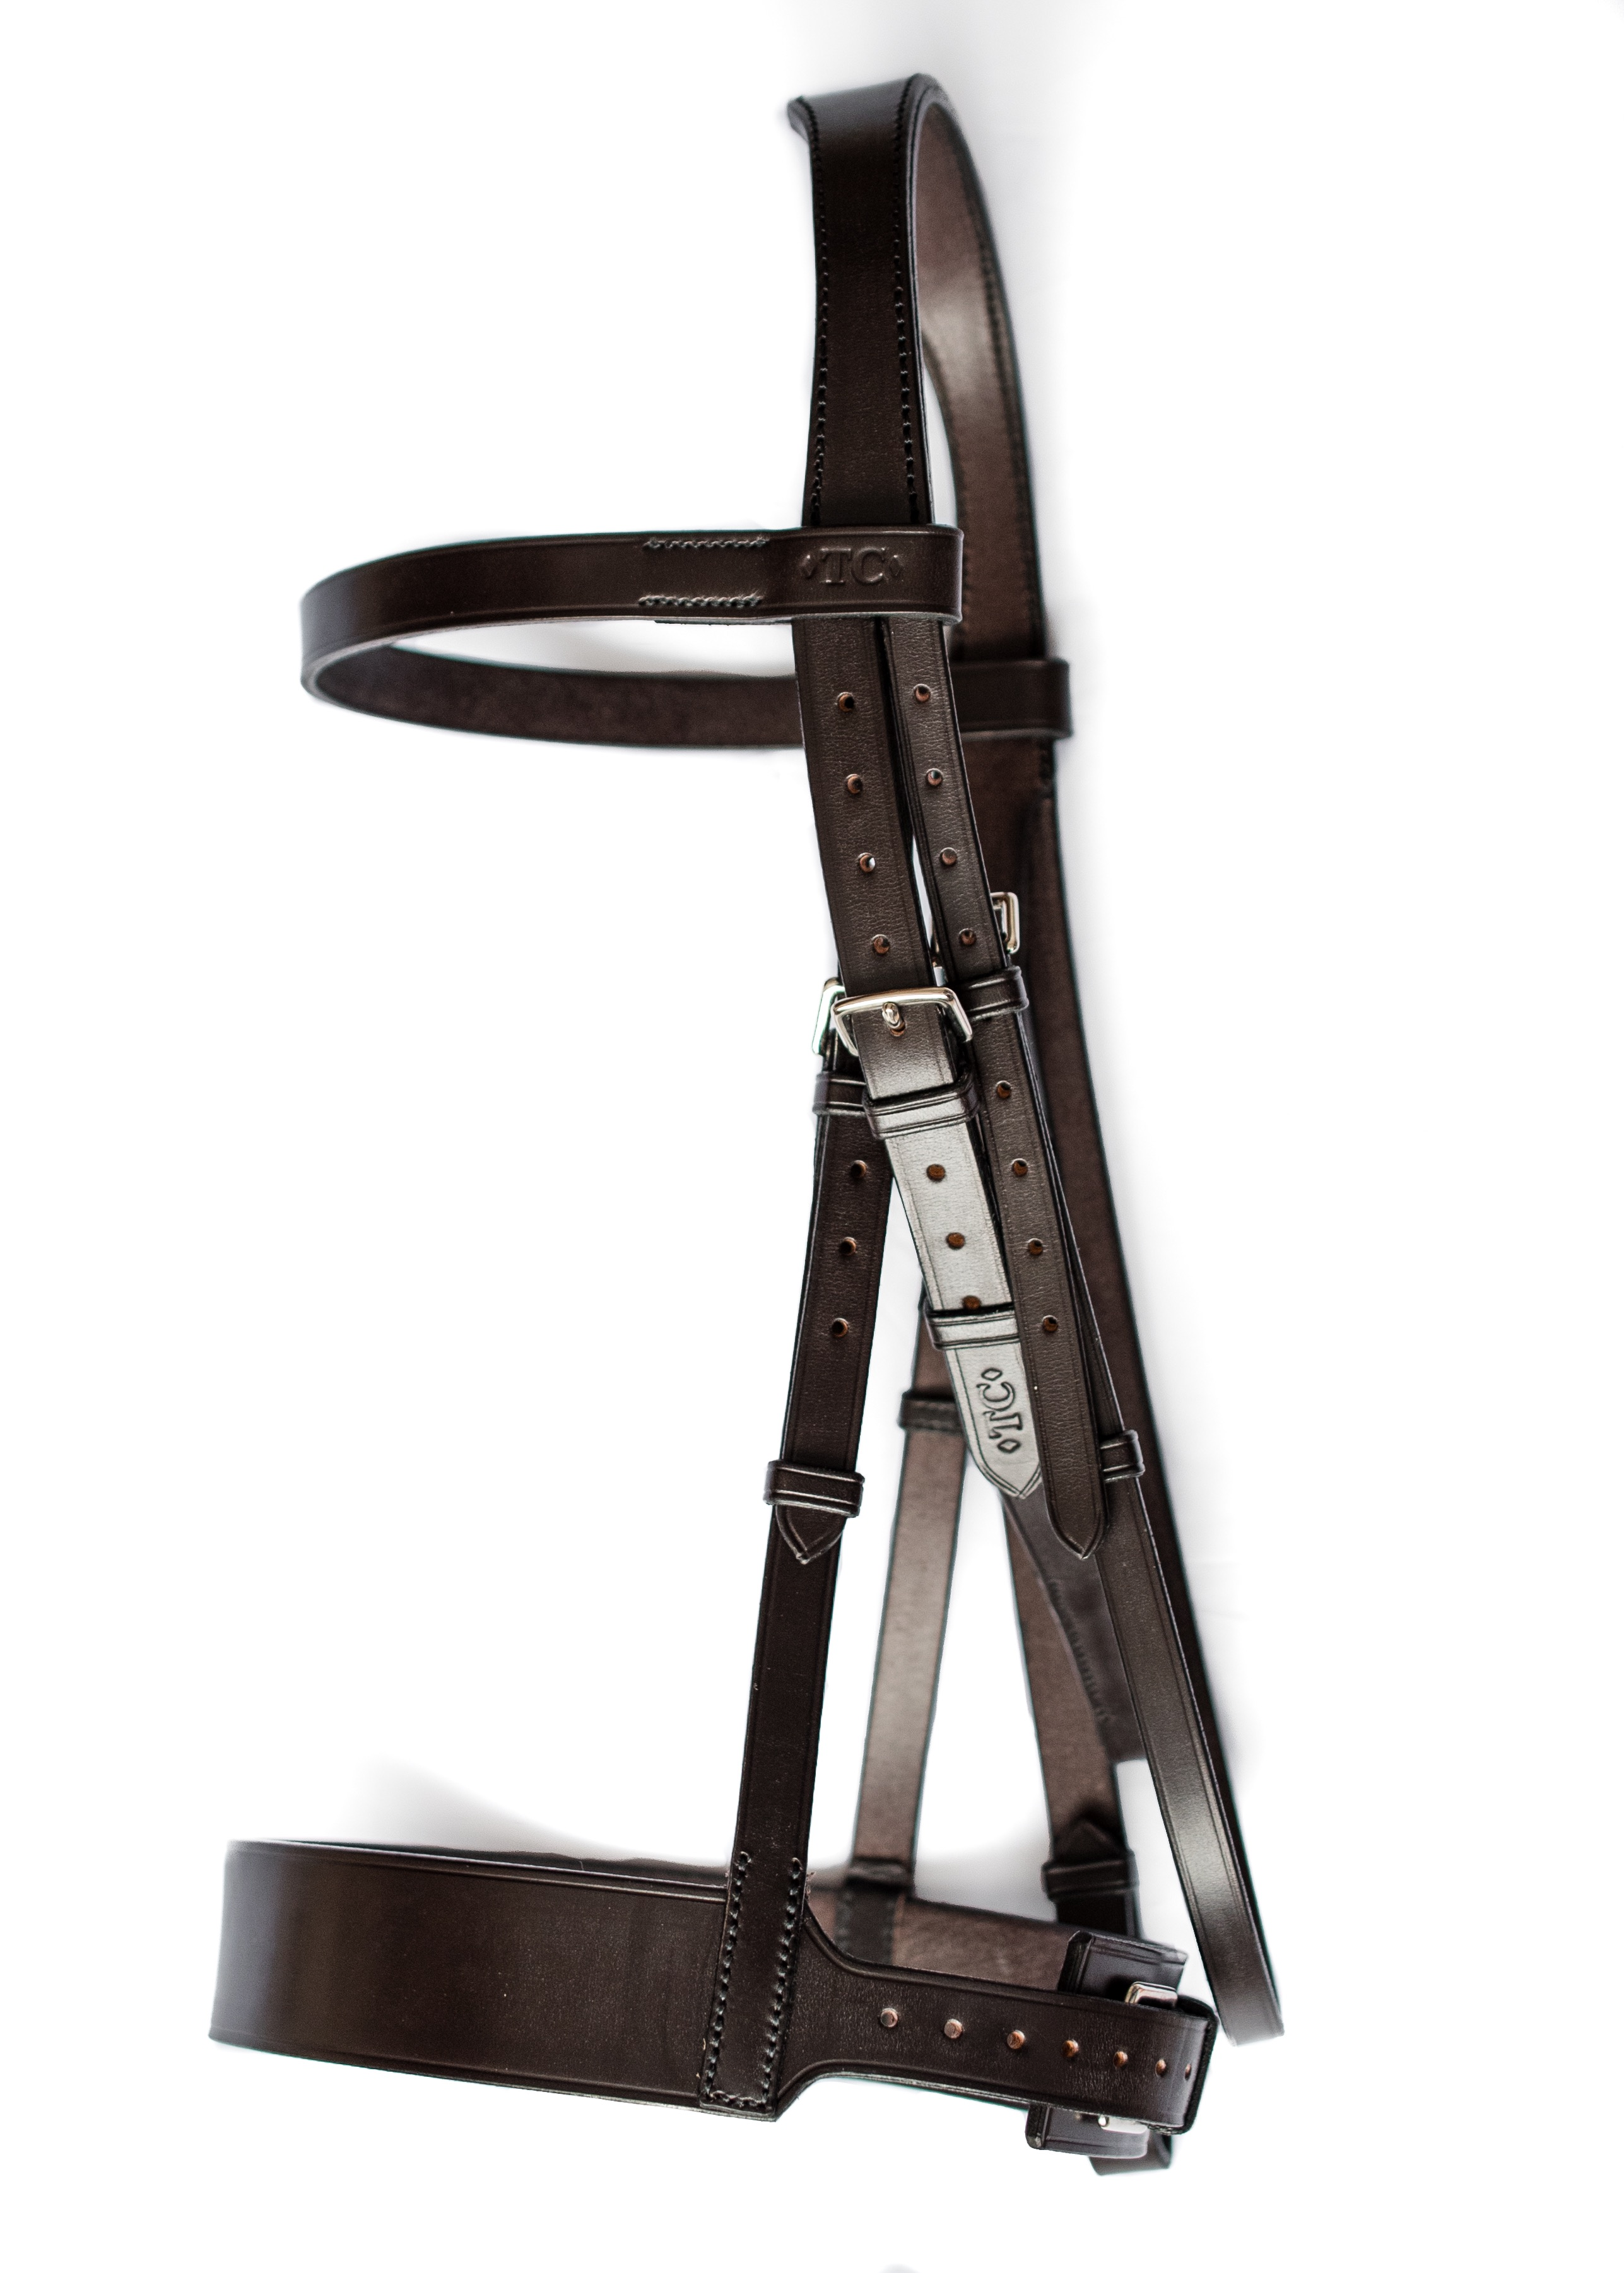 Anatomical hunter bridle in top quality English leather by TC Leatherwork